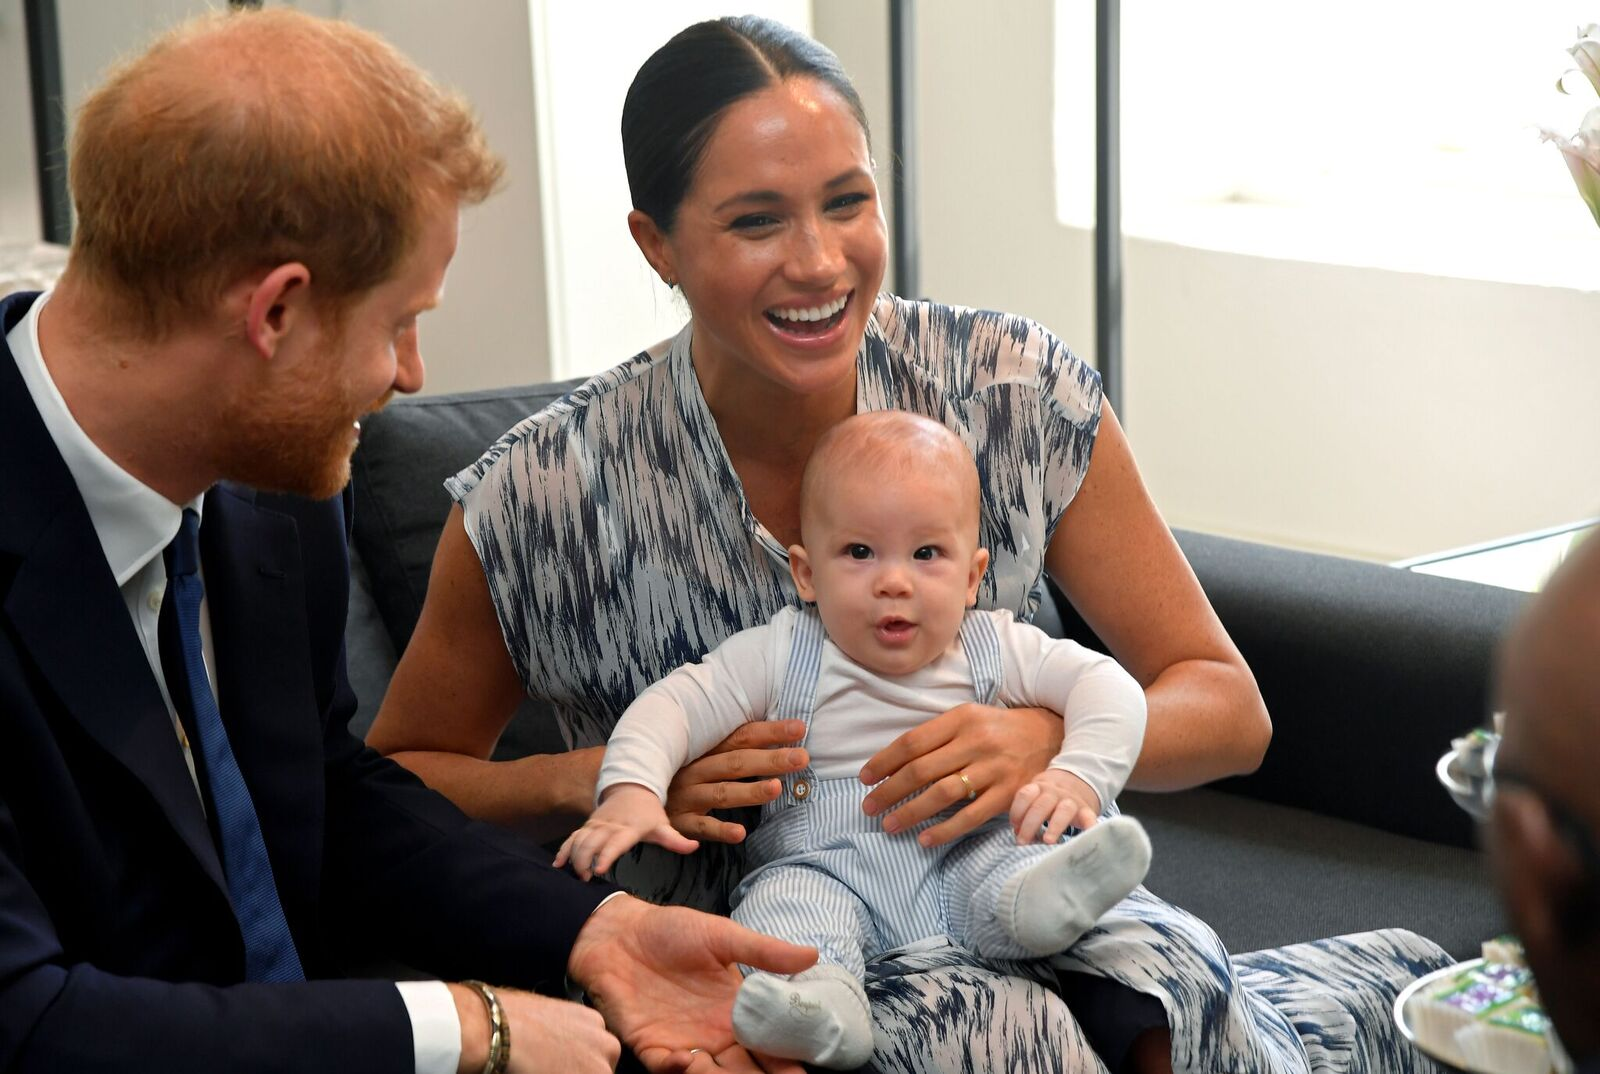 Prince Harry and Duchess Meghan with baby Archie Mountbatten-Windsor at the Desmond & Leah Tutu Legacy Foundation on September 25, 2019, in Cape Town, South Africa | Photo: Getty Images